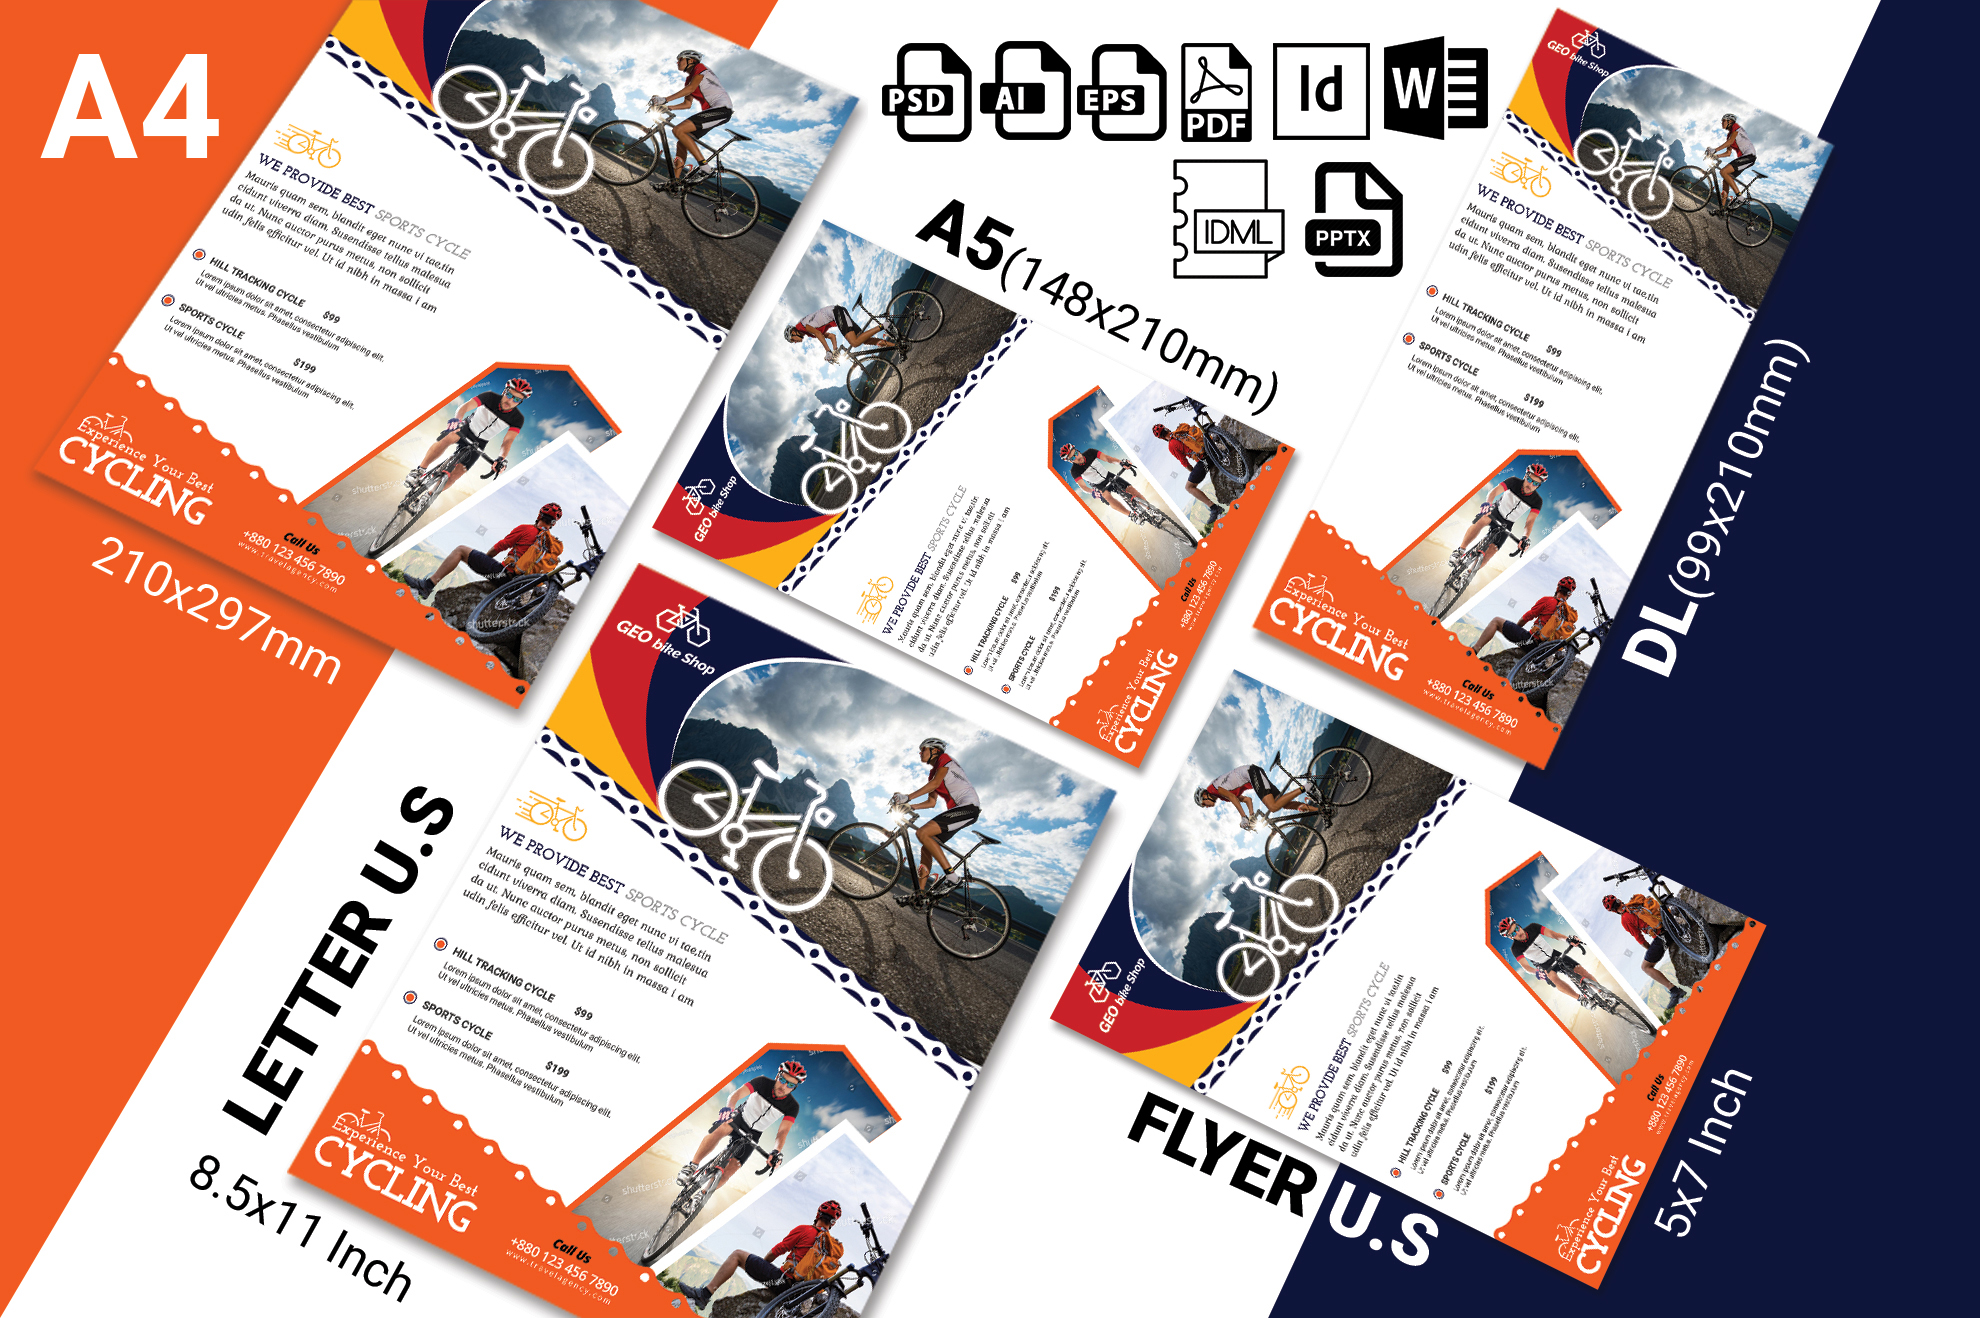 Cycle Shop Flyer Template Vol-02 example image 2